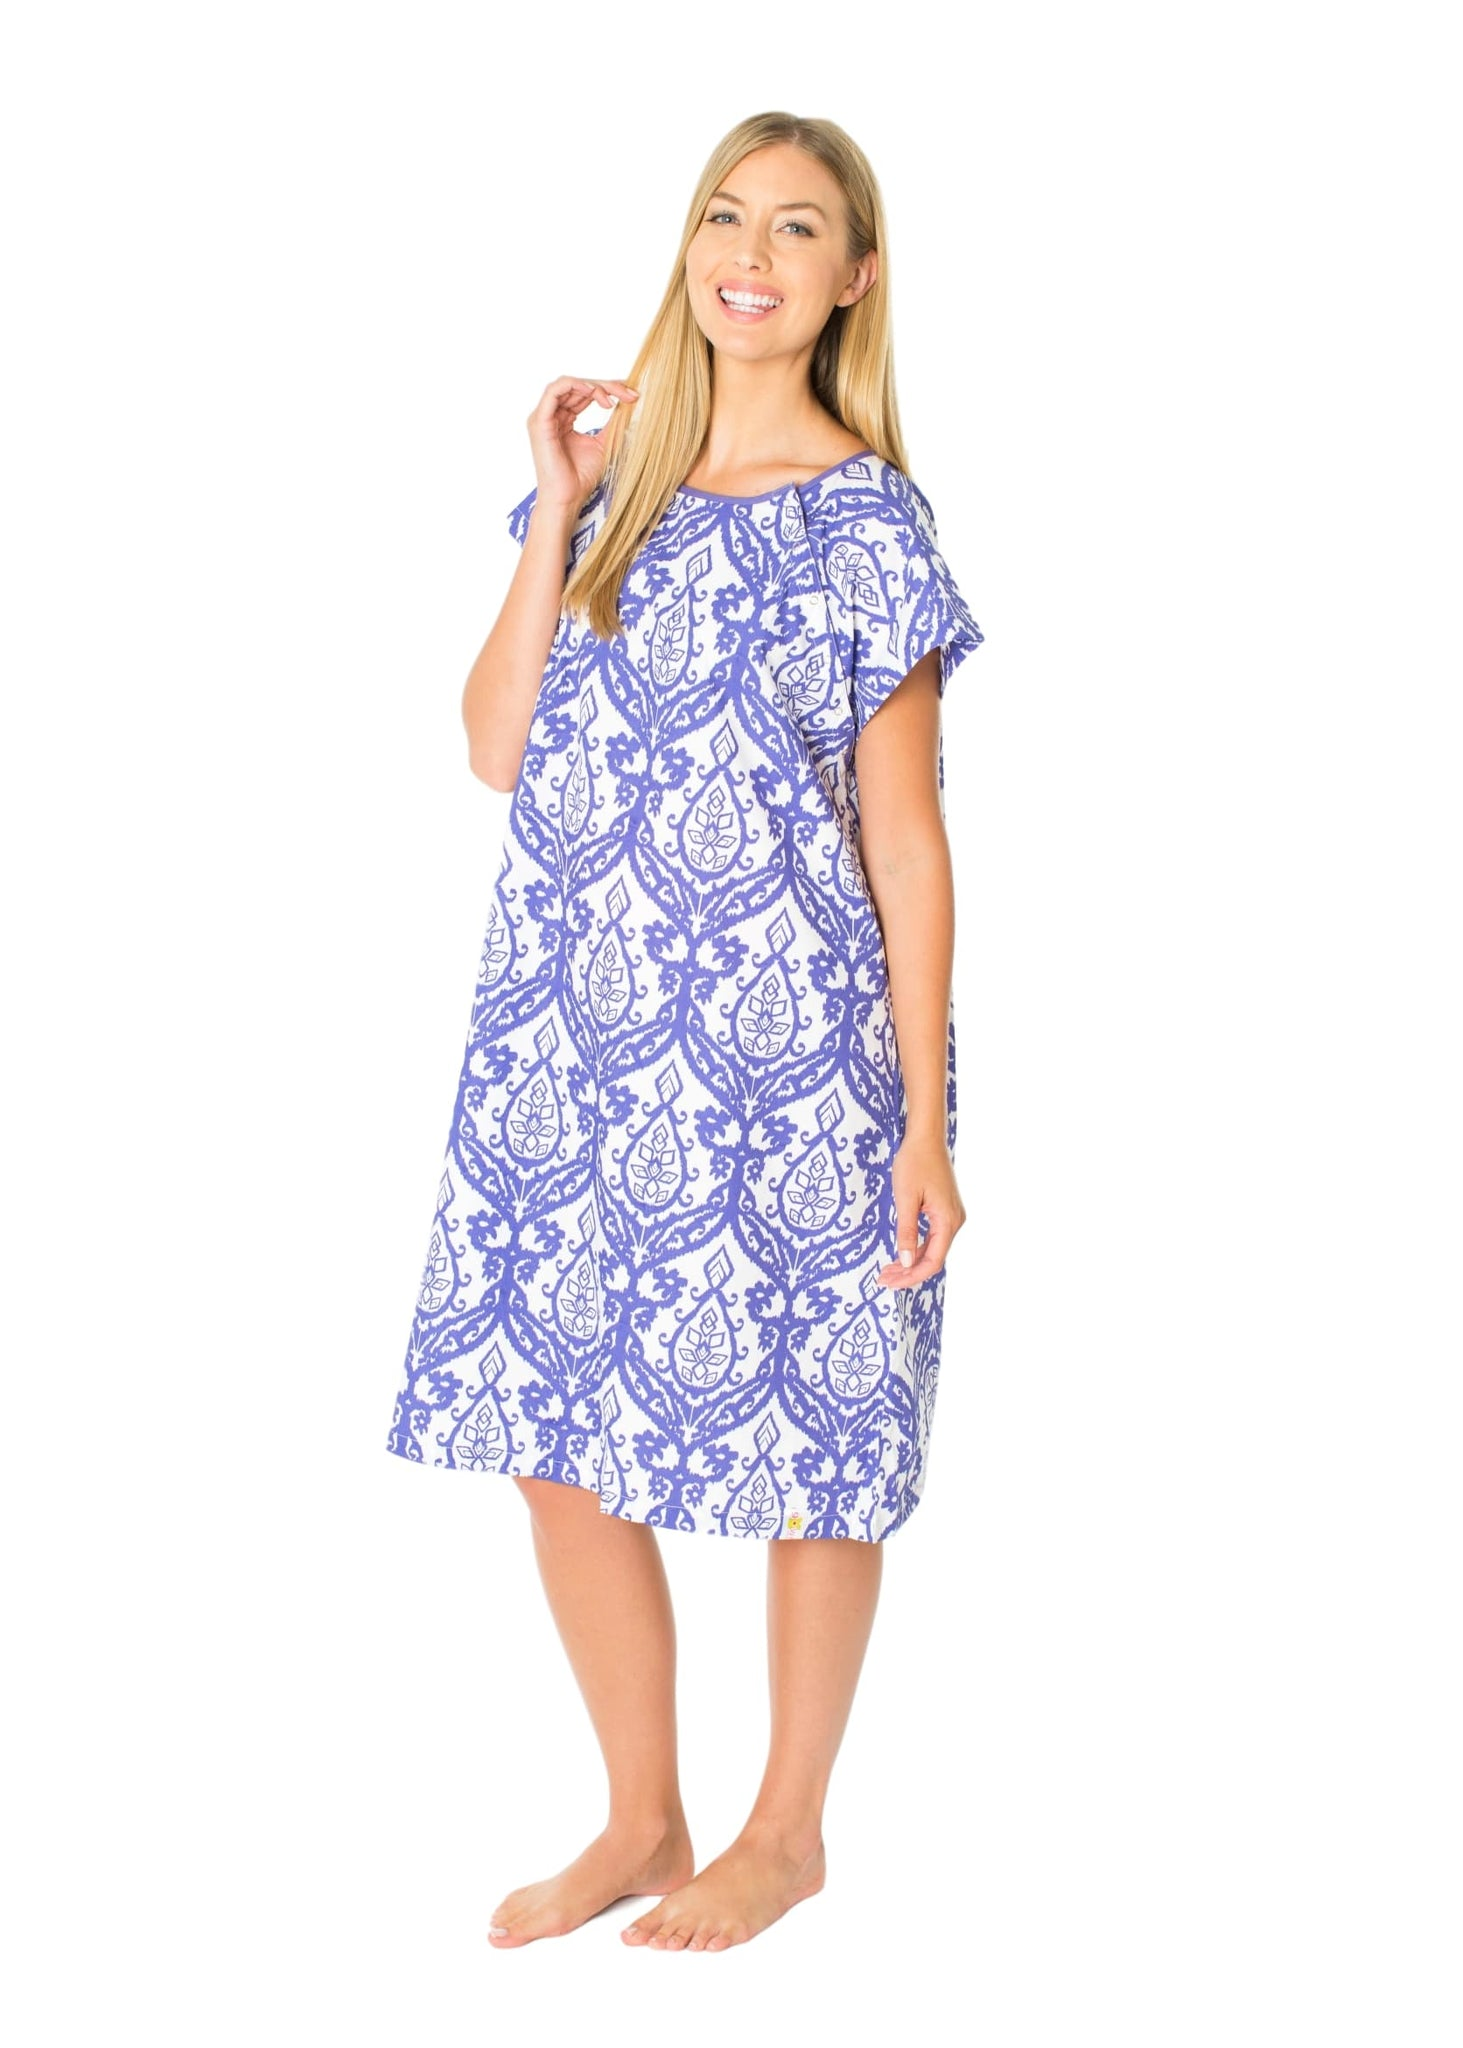 Brie Patient Hospital Gown Gownies